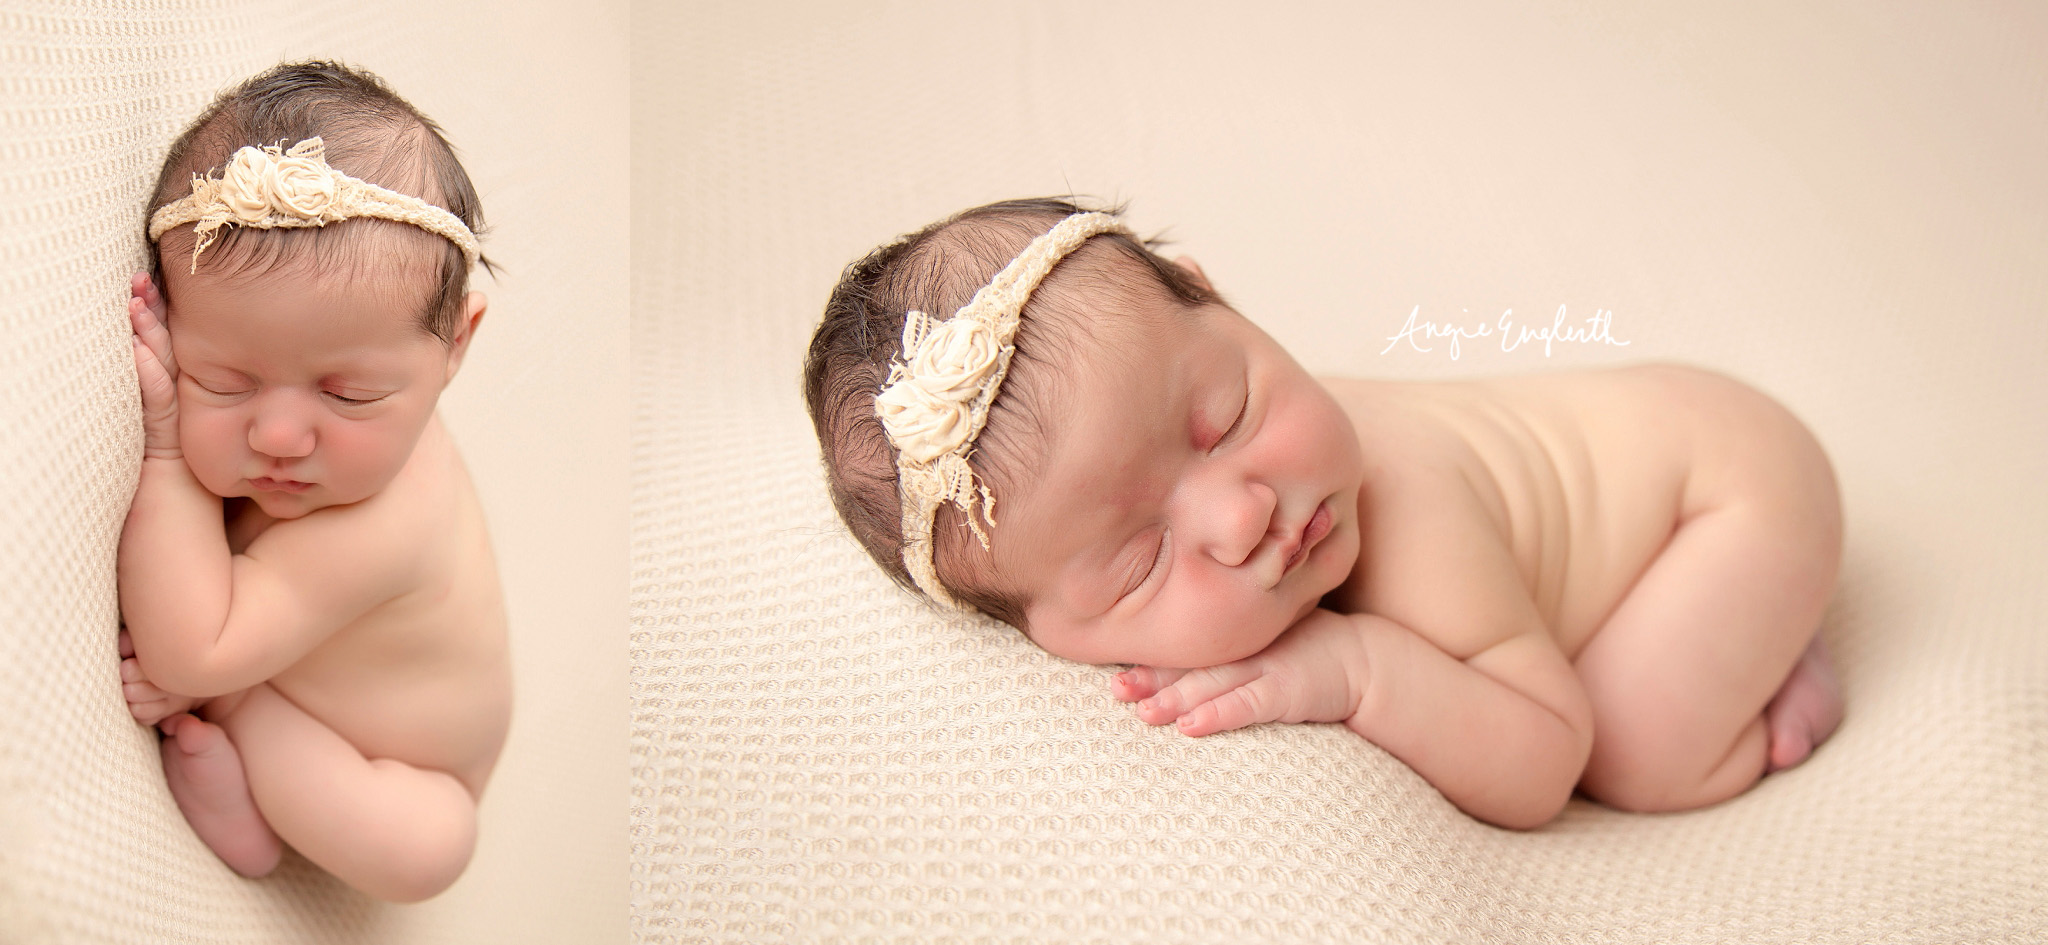 lancaster_newborn_and_maternity_photographer_angie_englerth_central_pa_b038.jpg